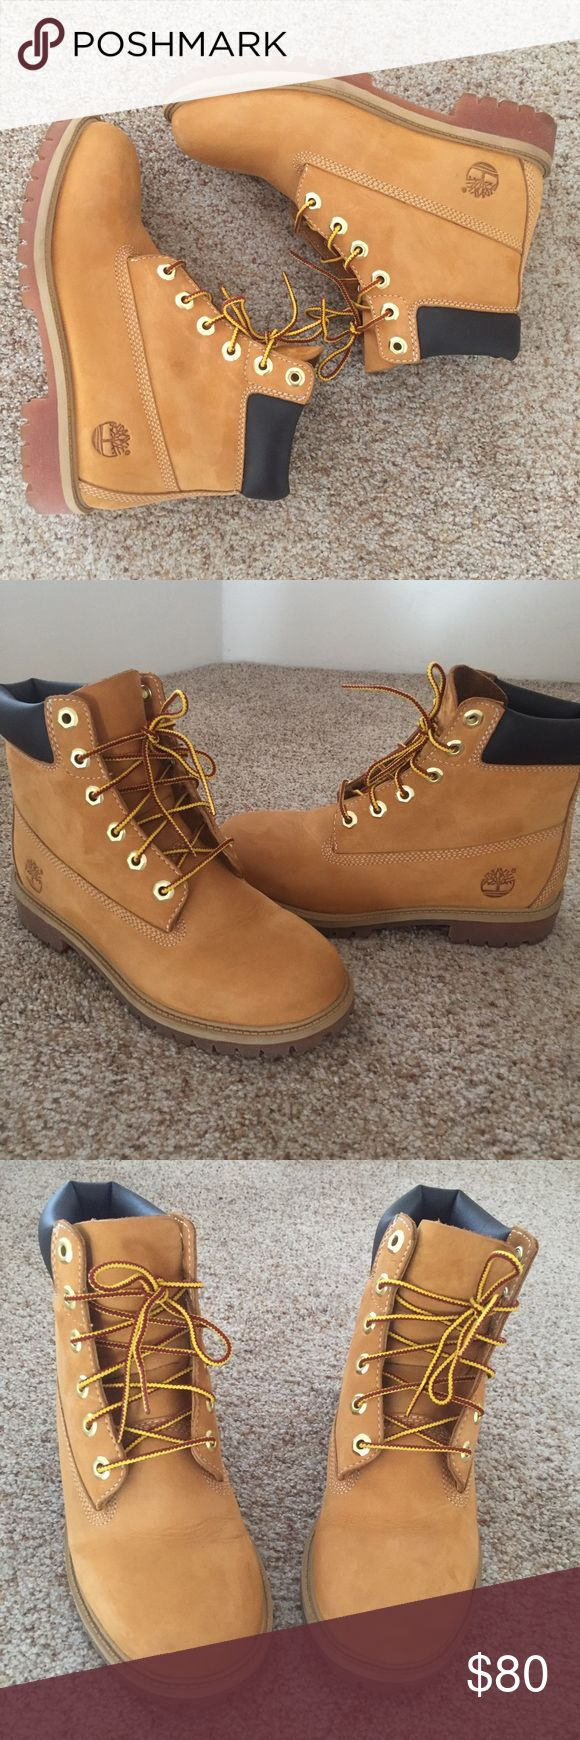 Timberland Waterproof Boots Very good condition,worn twice. Junior size 4.5 fits women's 7. Timberland Shoes Ankle Boots & Booties